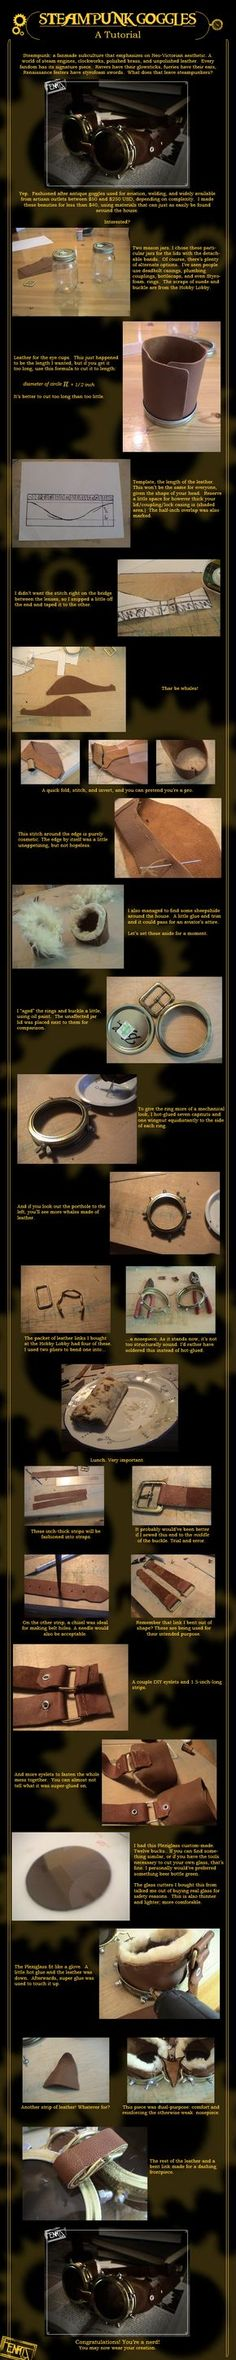 Goggles Tutorial A tutorial on how to create your own steampunk goggles.A tutorial on how to create your own steampunk goggles. Moda Steampunk, Steampunk Airship, Steampunk Goggles, Steampunk Wedding, Dieselpunk, Steampunk Fashion, Fashion Goth, Steampunk Cosplay, Steampunk Halloween